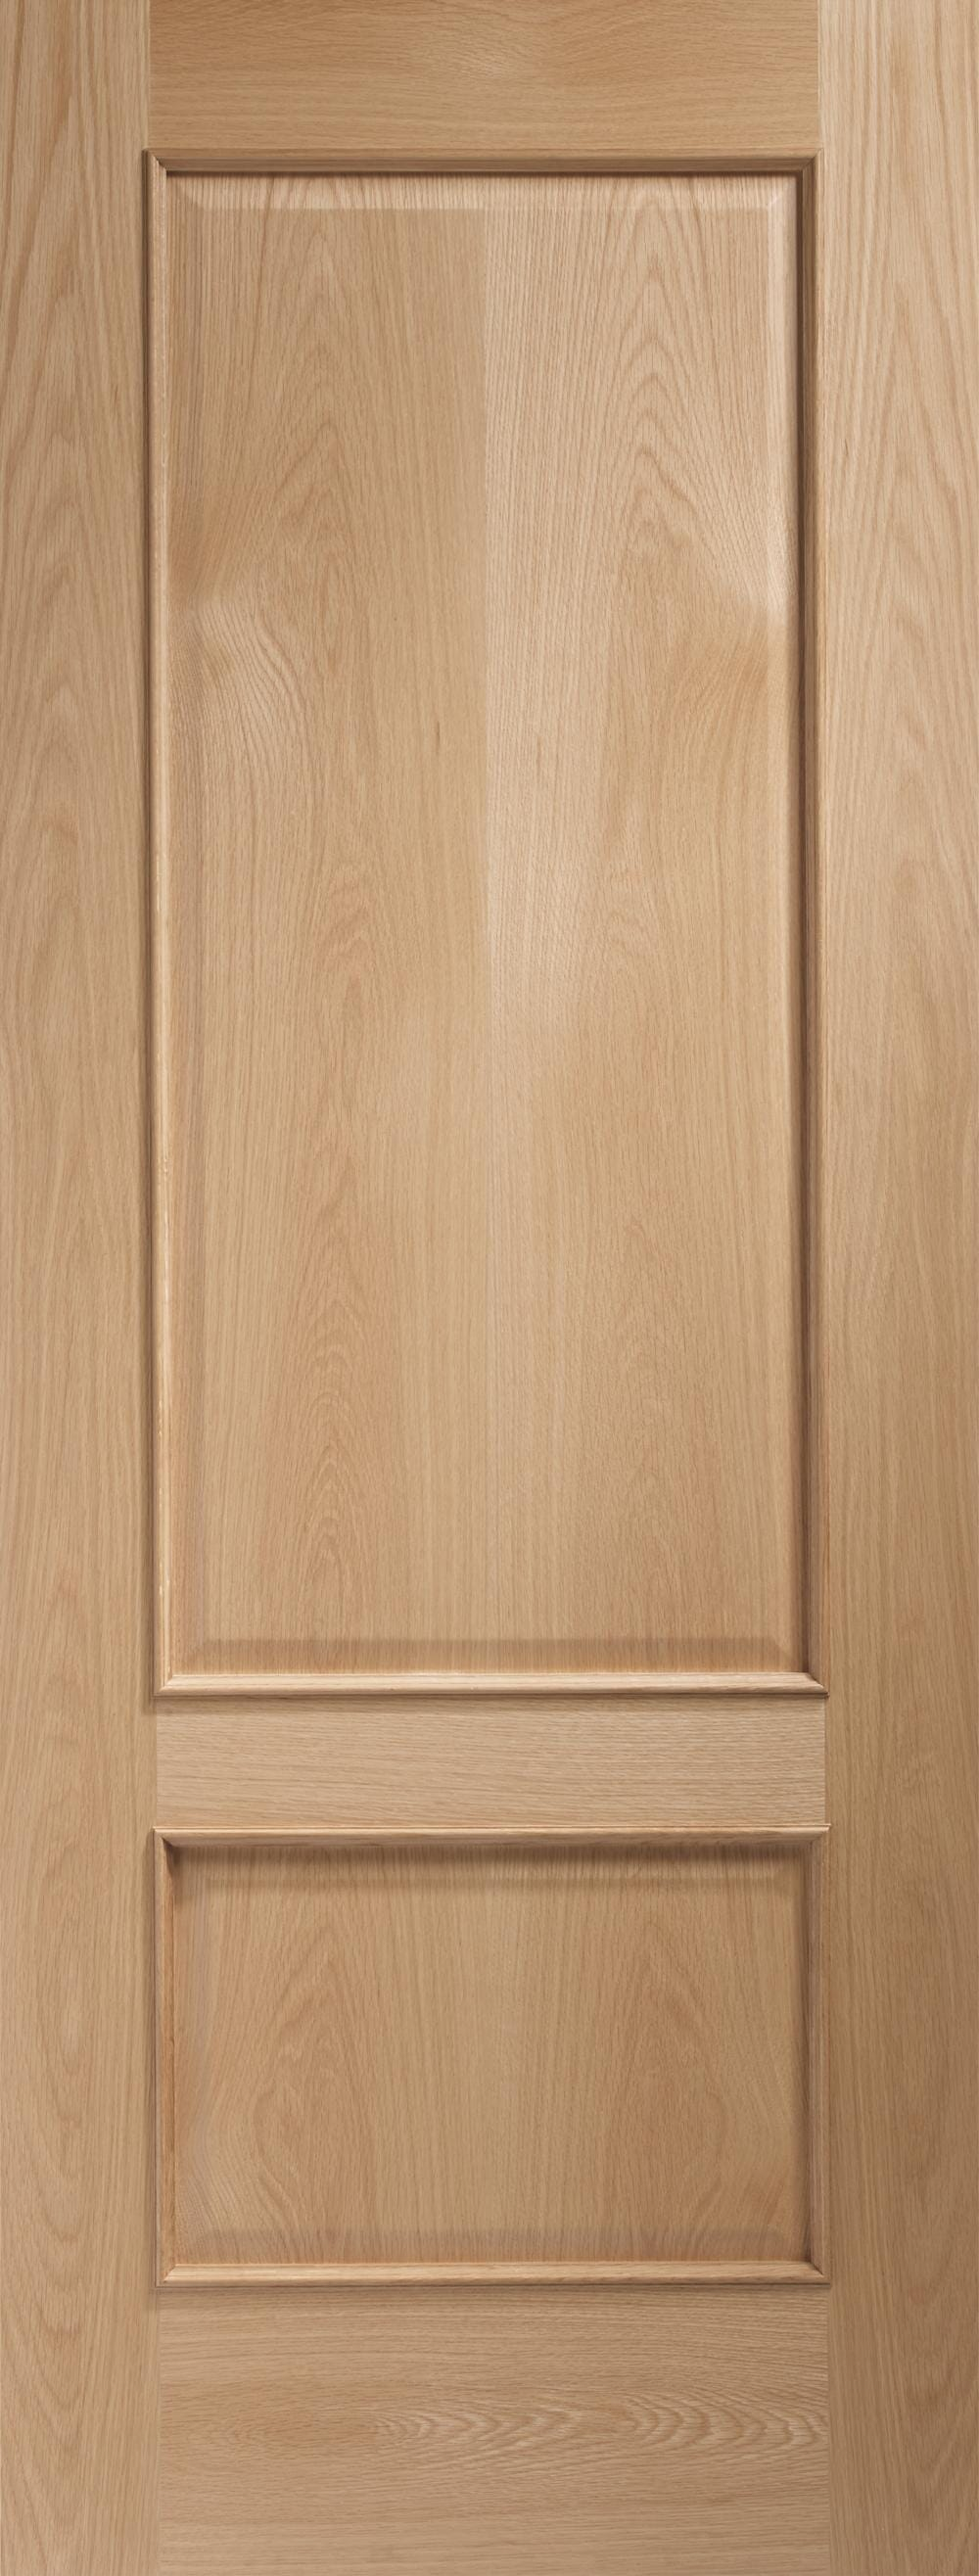 Andria Oak Rm2s - Xl Joinery  Image